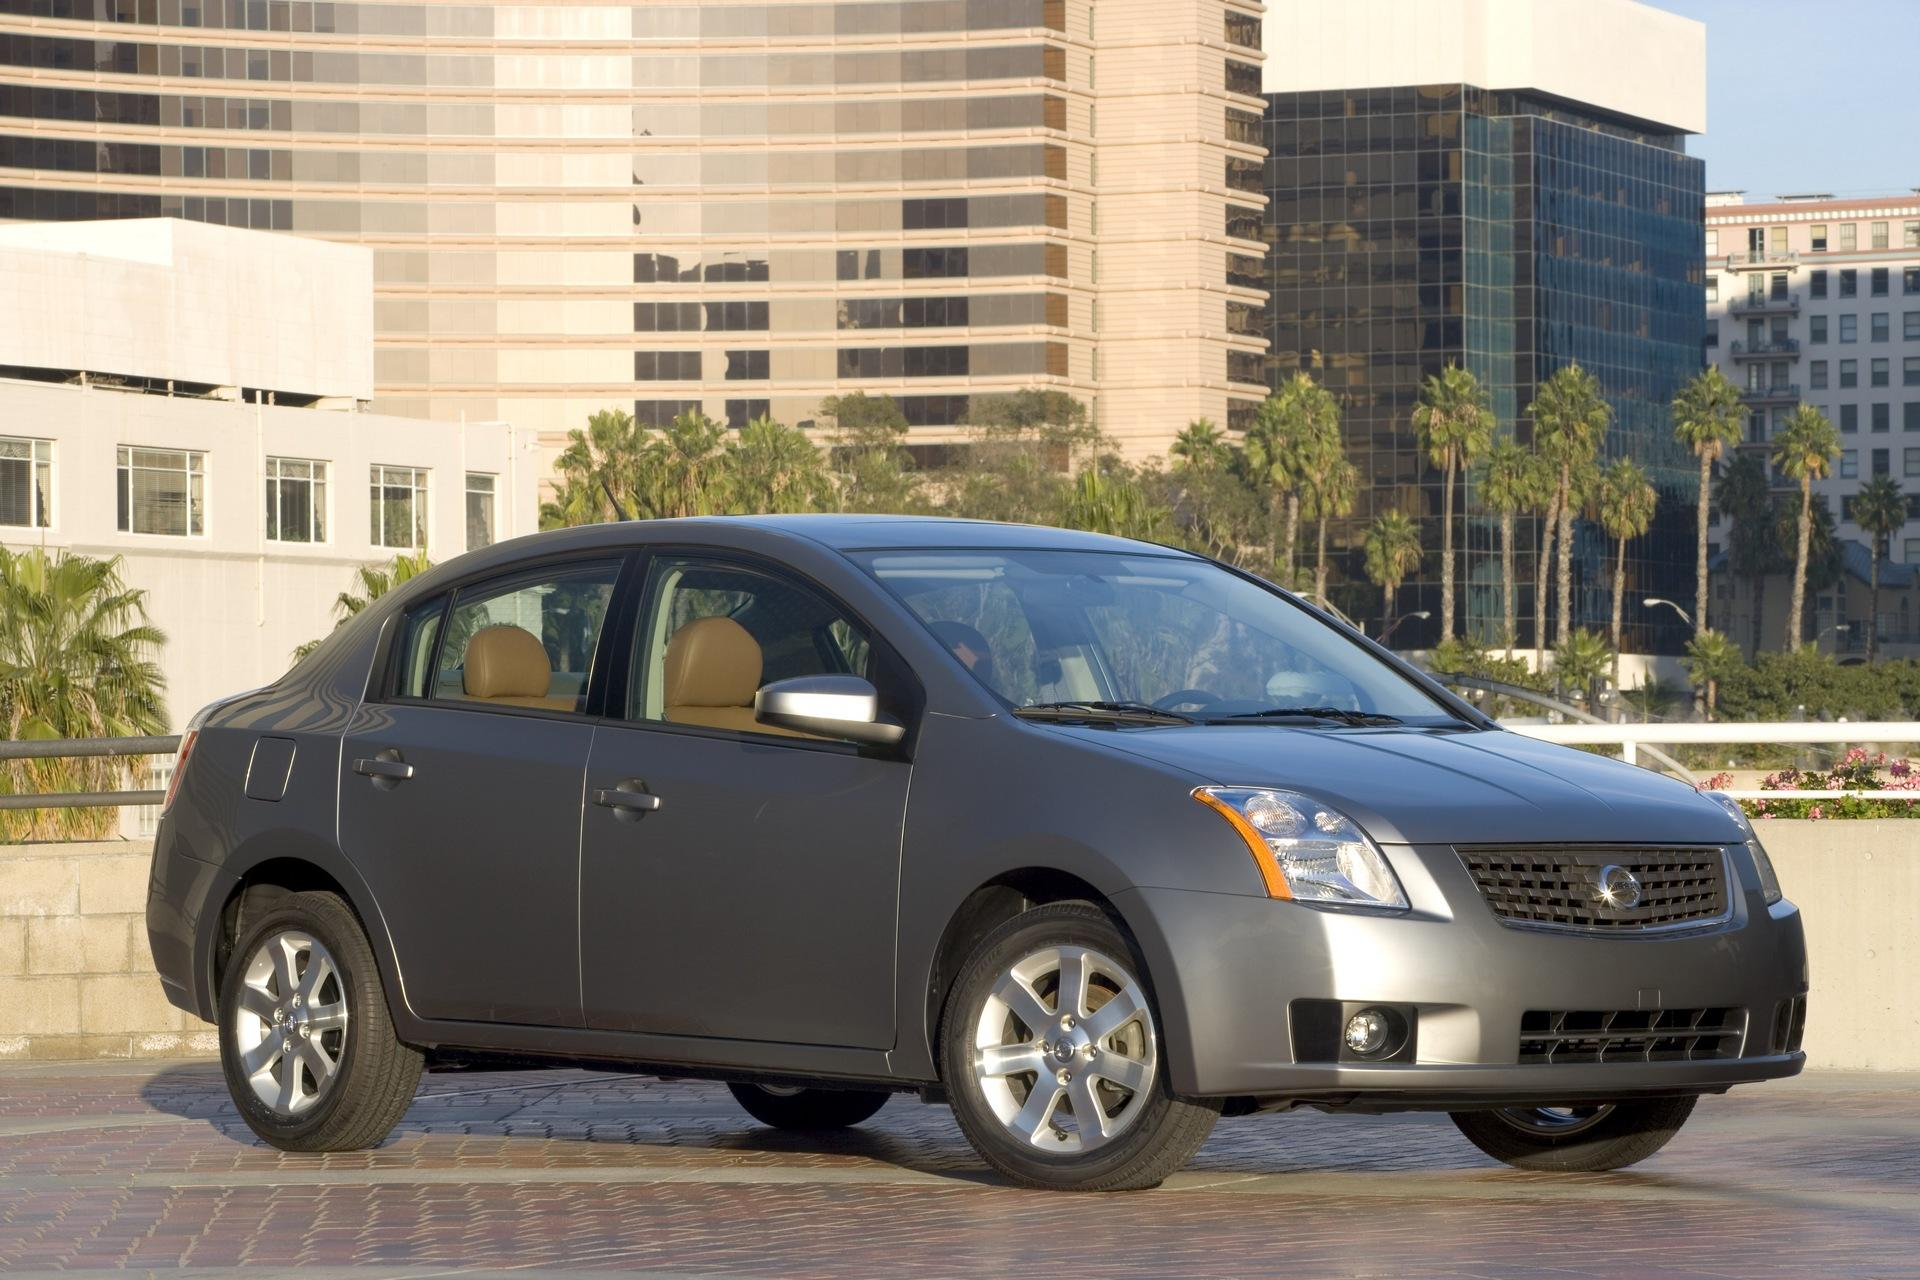 2008 Nissan Sentra News and Information | conceptcarz.com